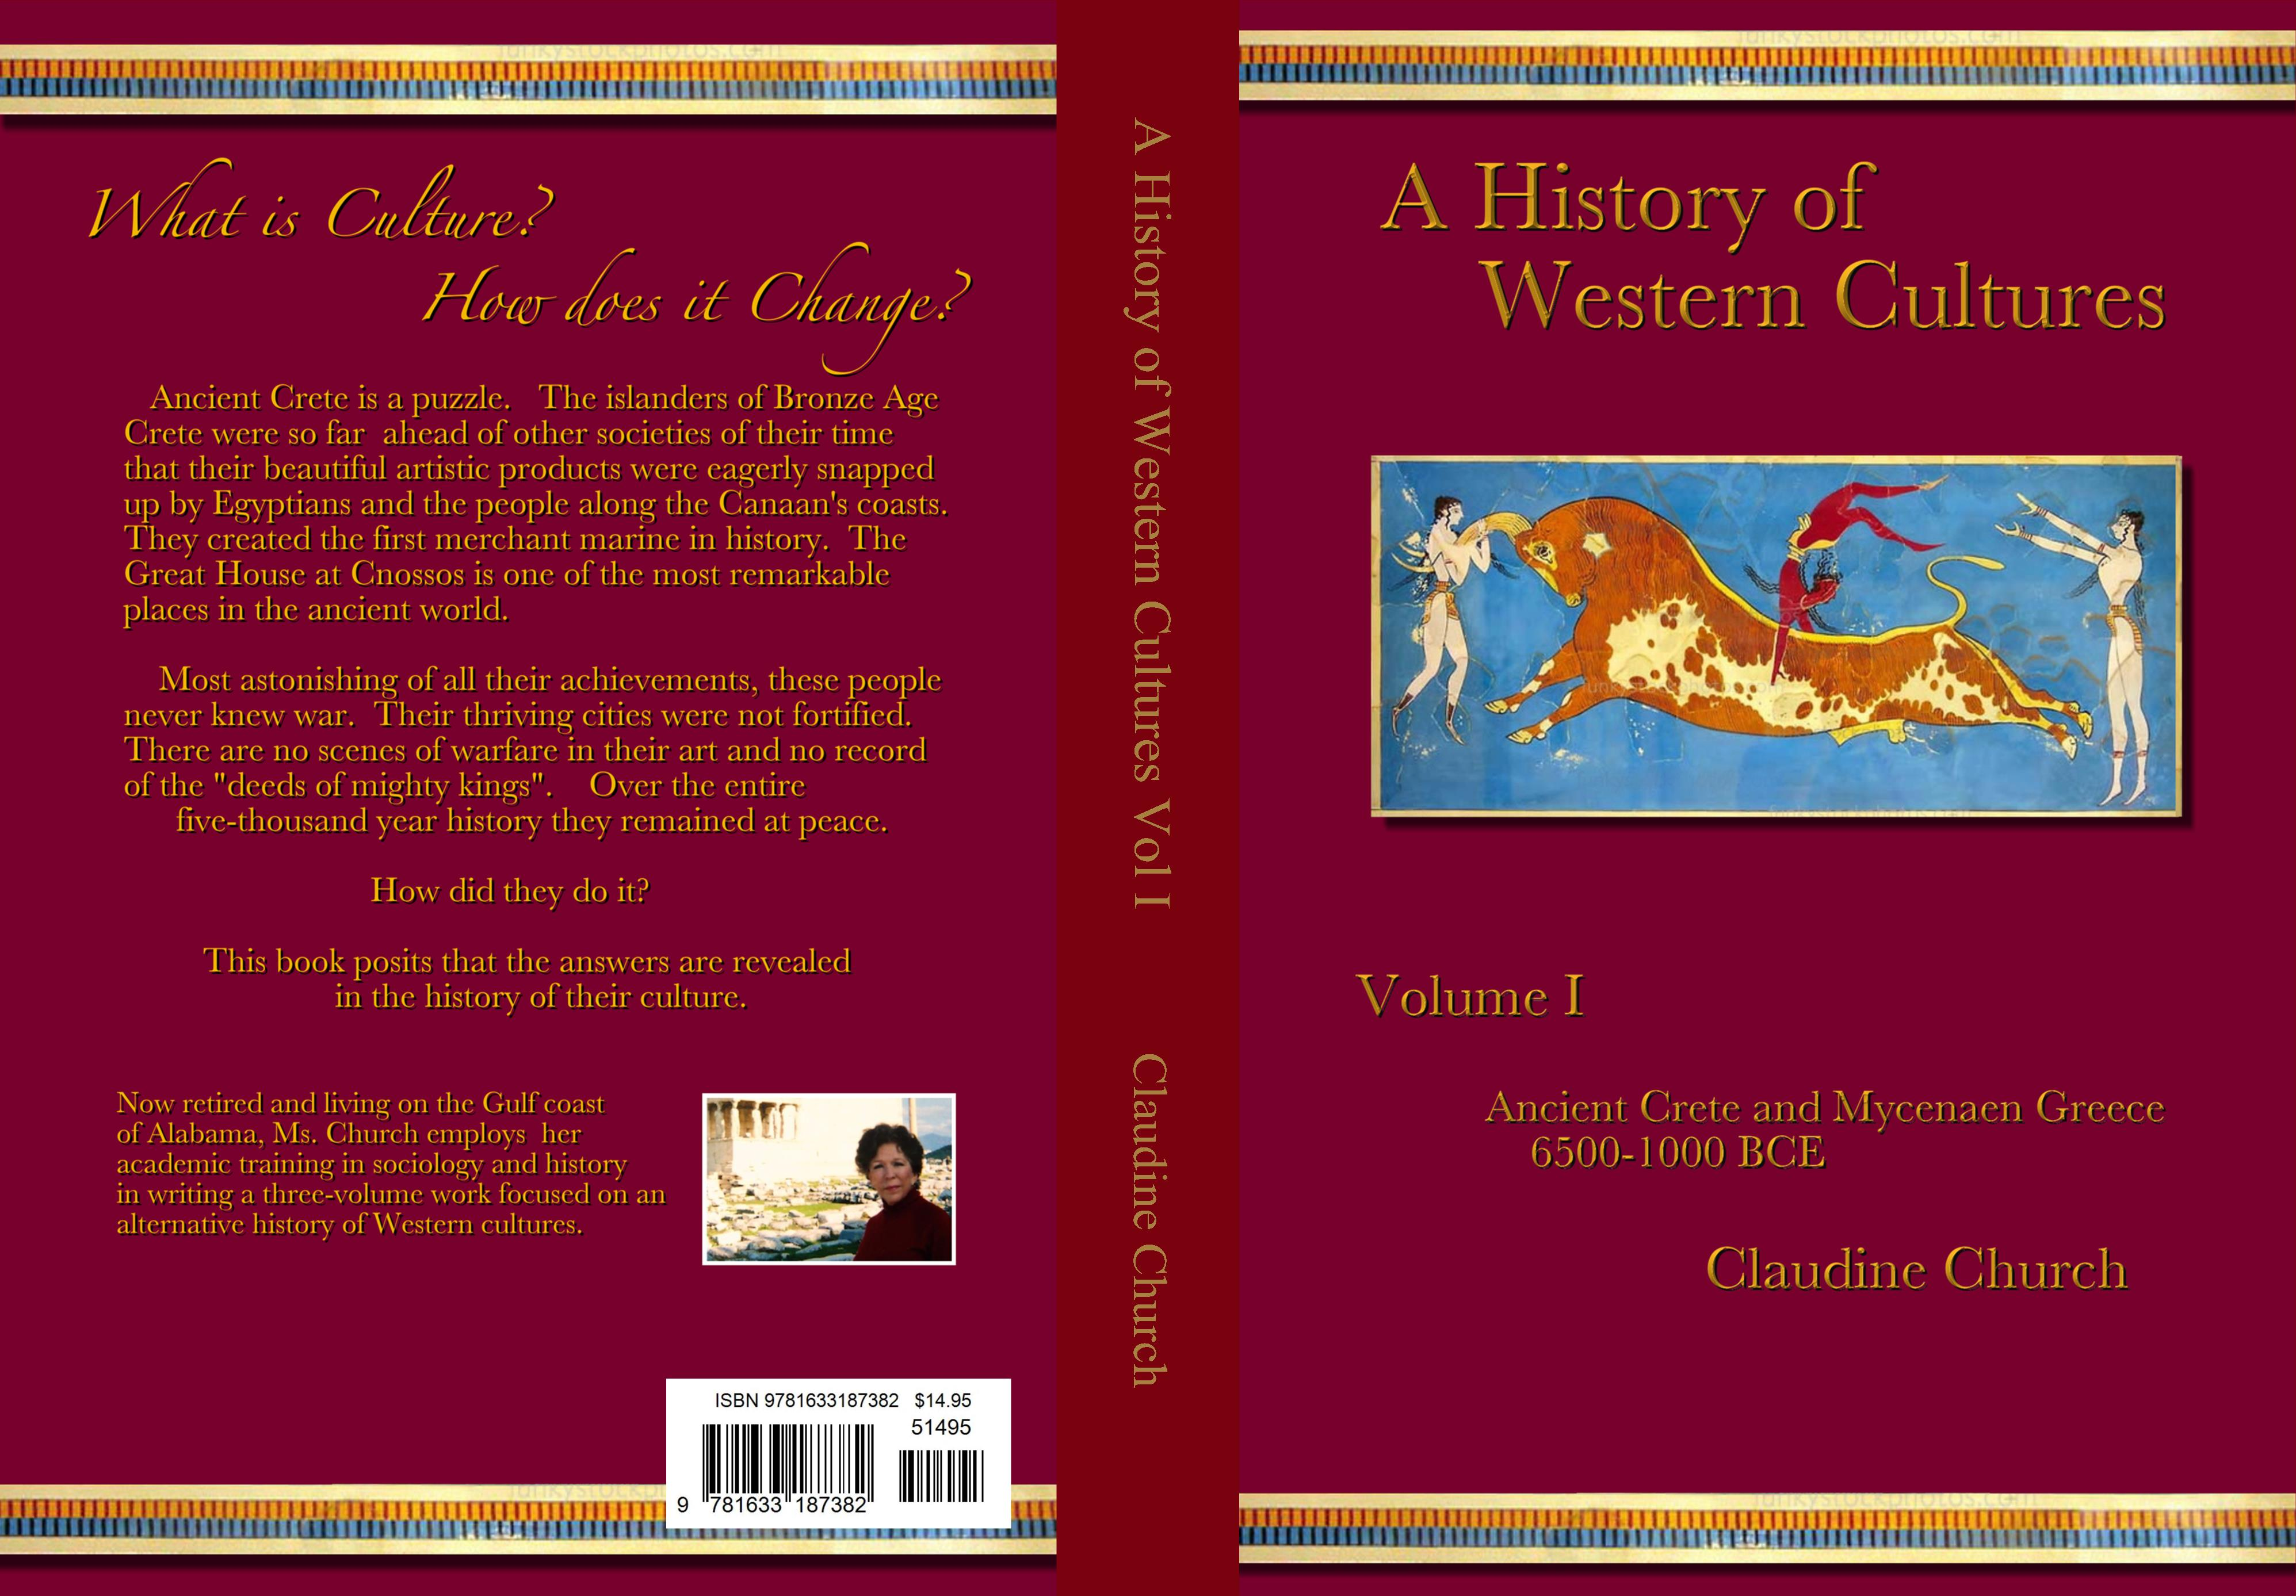 A History of Western Cultures Vol I cover image